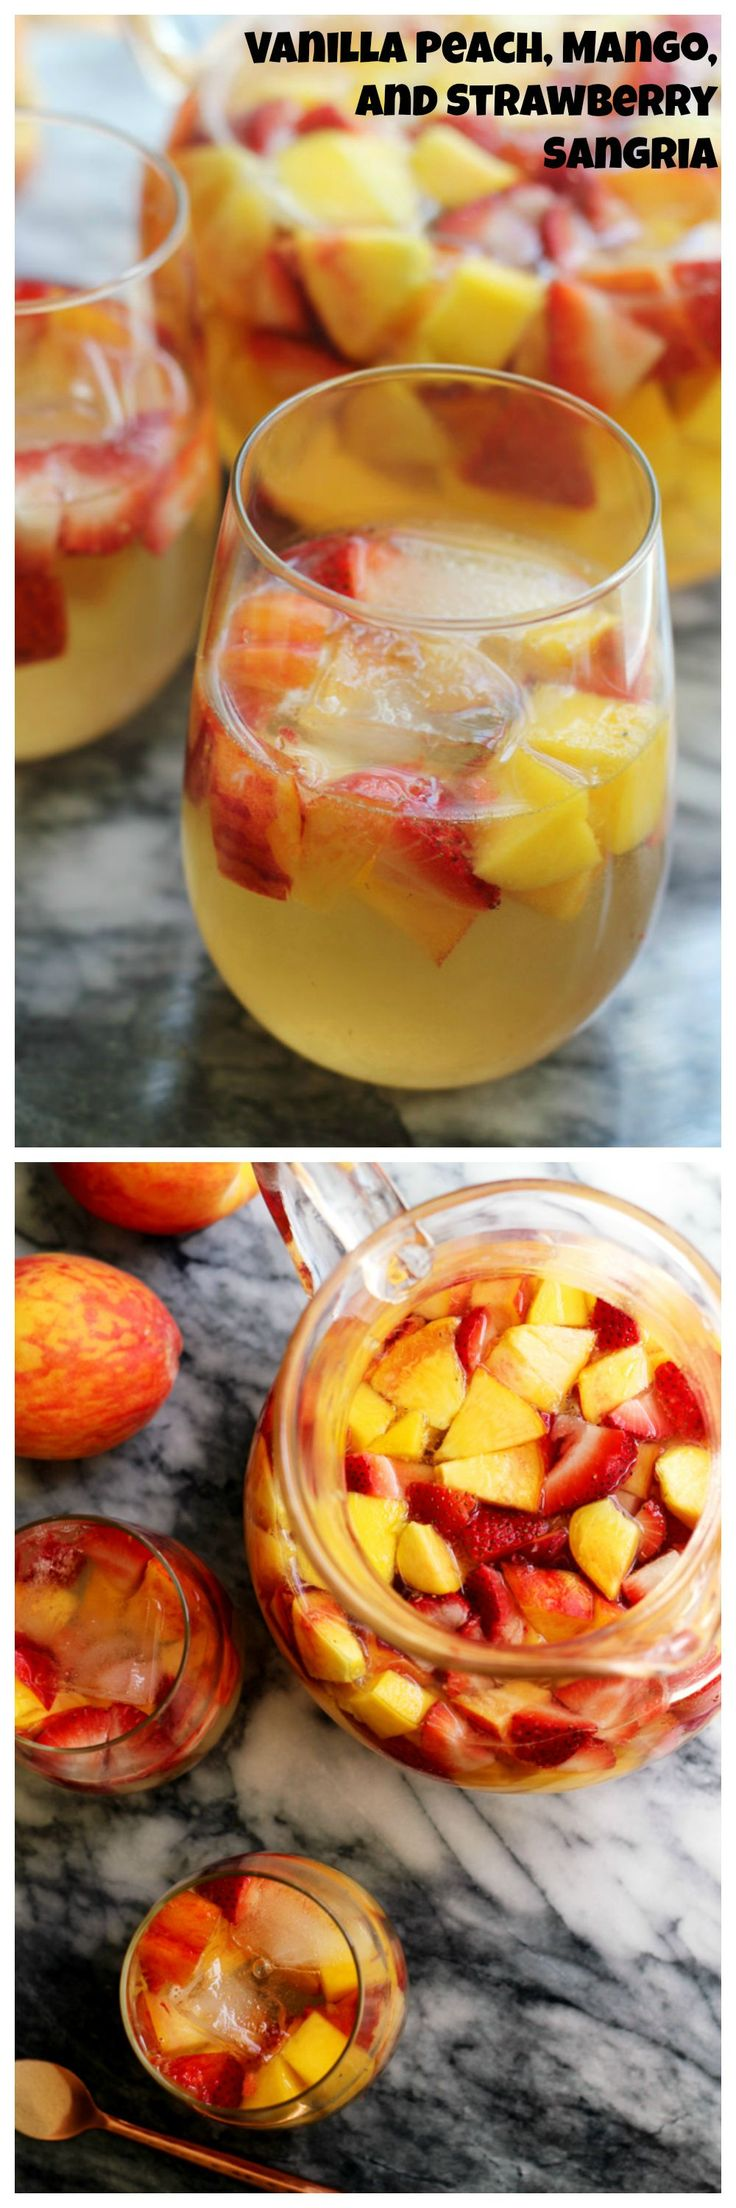 Juicy seasonal fruit makes this vanilla peach, mango, and strawberry sangria perfect for summer sipping.